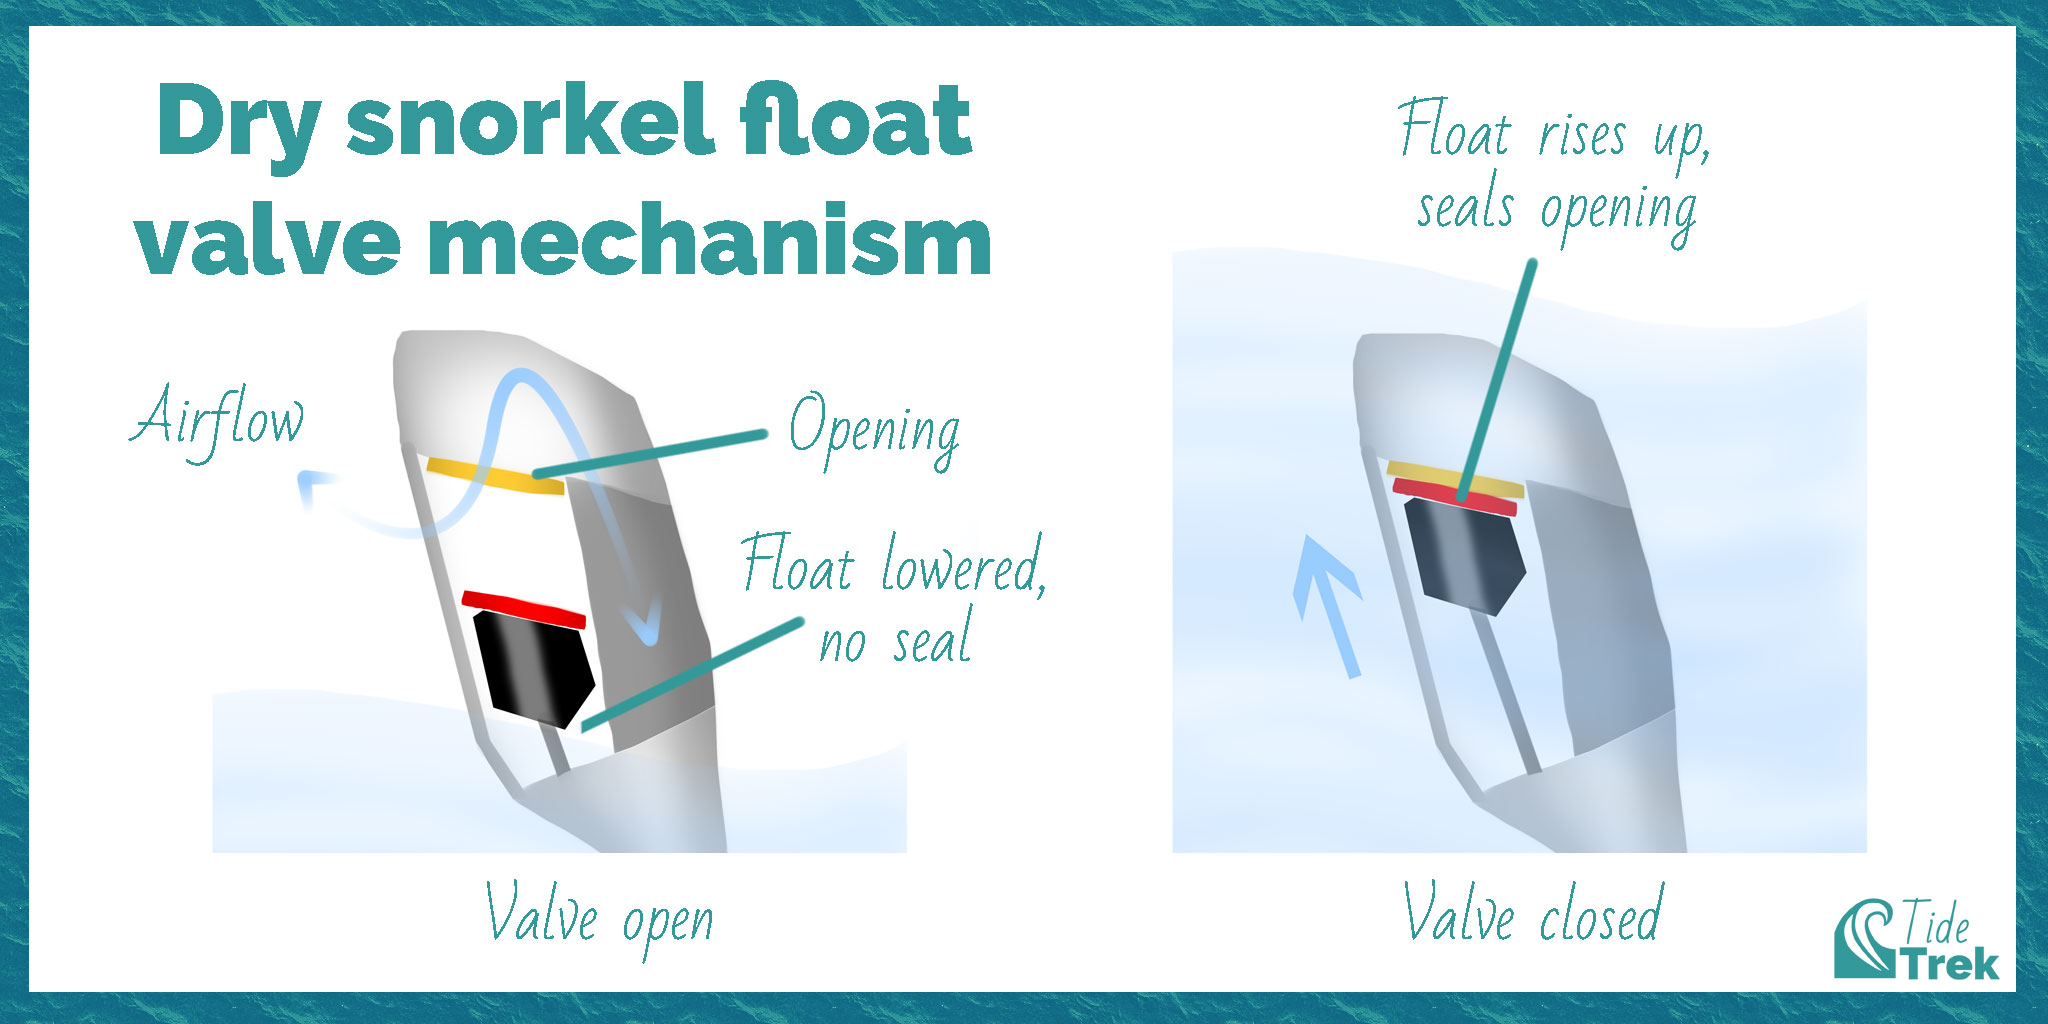 Diagrams showing how a dry snorkel float valve works